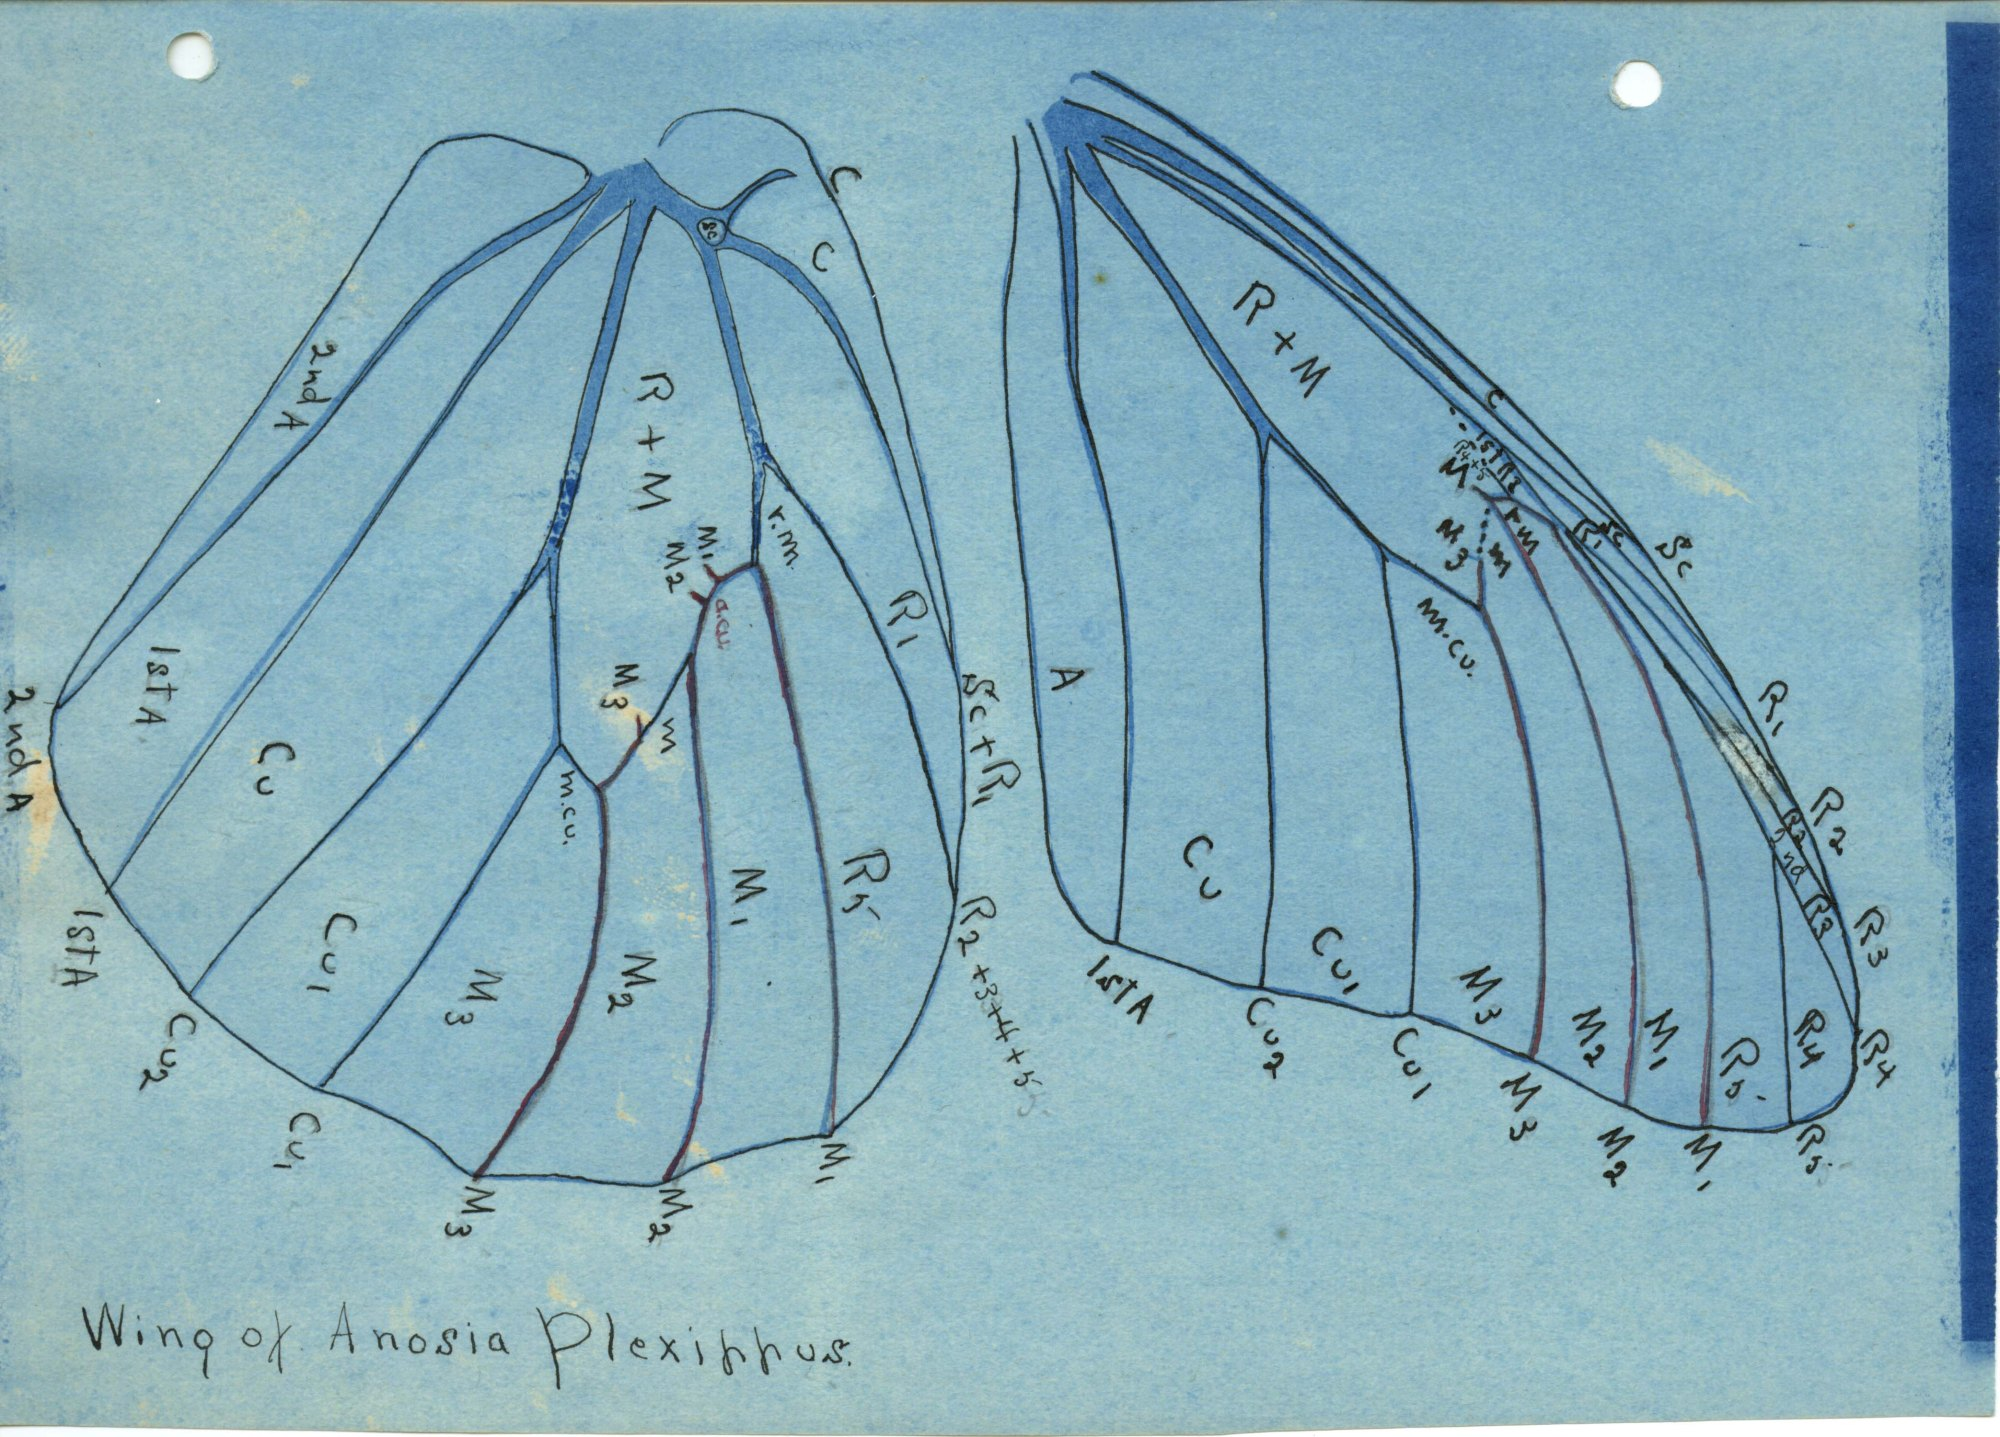 Colored image of a drawing of wings of Anosia Plexippus